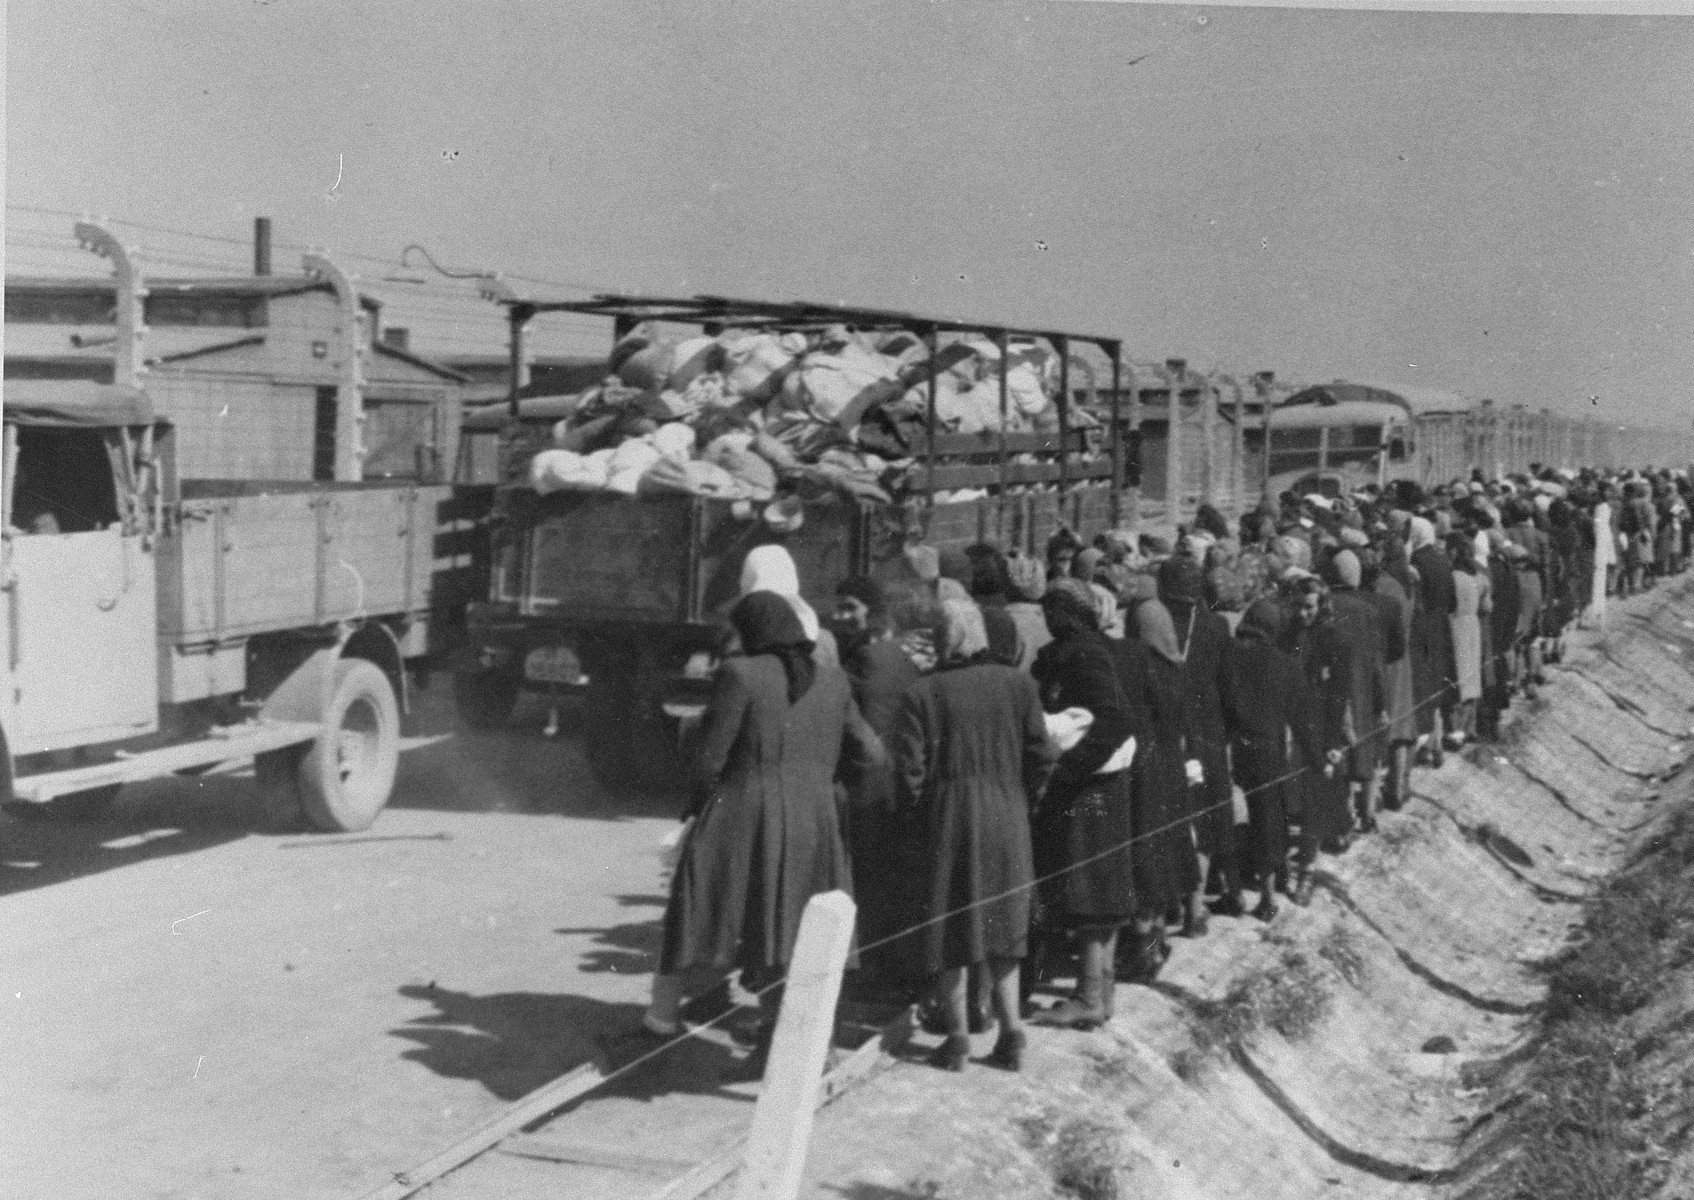 "Jewish women and children from Subcarpathian Rus who have been selected for death, watch as trucks loaded with confiscated personal property drive past on their way to the ""Kanada"" warehouses.   The camp prisoners came to refer to the looted property as ""Kanada,"" associating it with the riches symbolized by Kanada.  The members of this commando were almost exclusively Jews.  ""Kanada"" storage facilities occupied several dozen barracks and other buildings around the camp.  The looted property was funneled from Auschwitz through an extensive distribution network that served many individuals and various economic branches of the Third Reich."